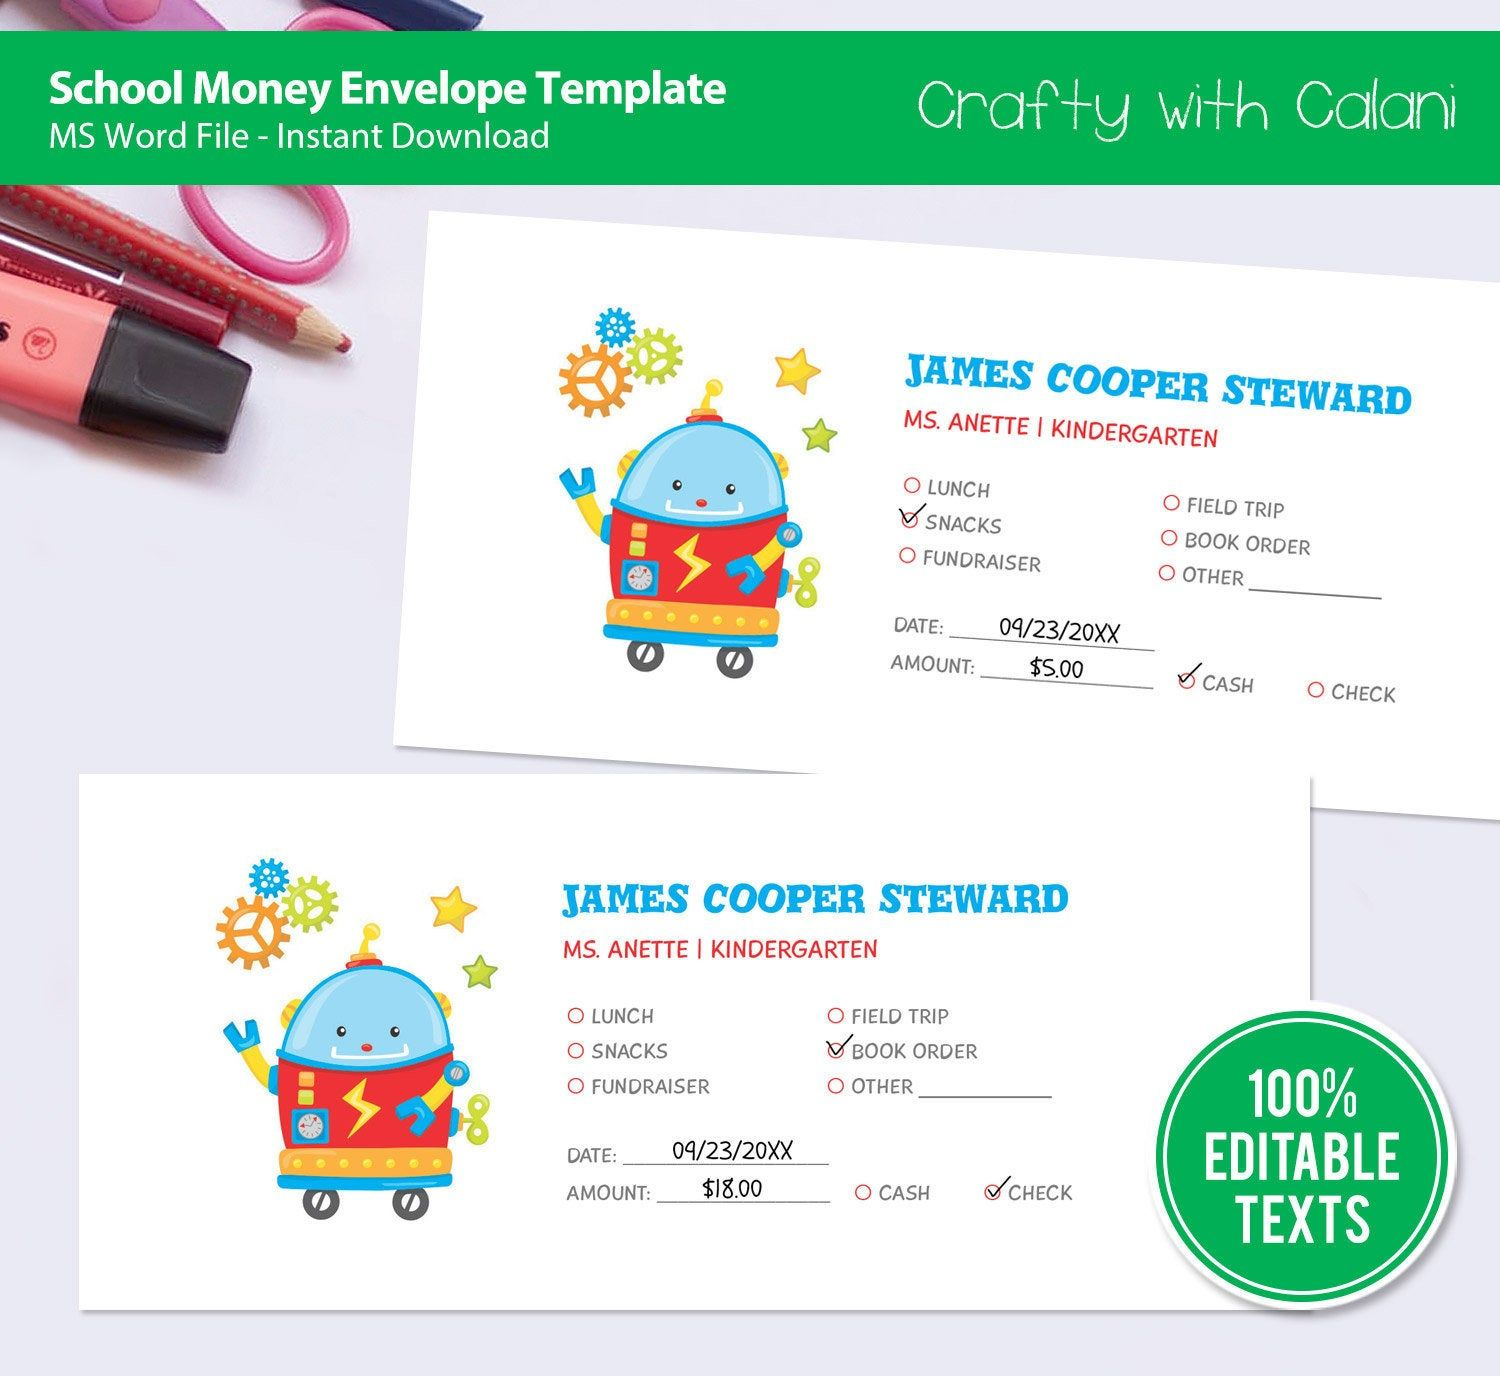 School Money Envelope Template, Custom School Money